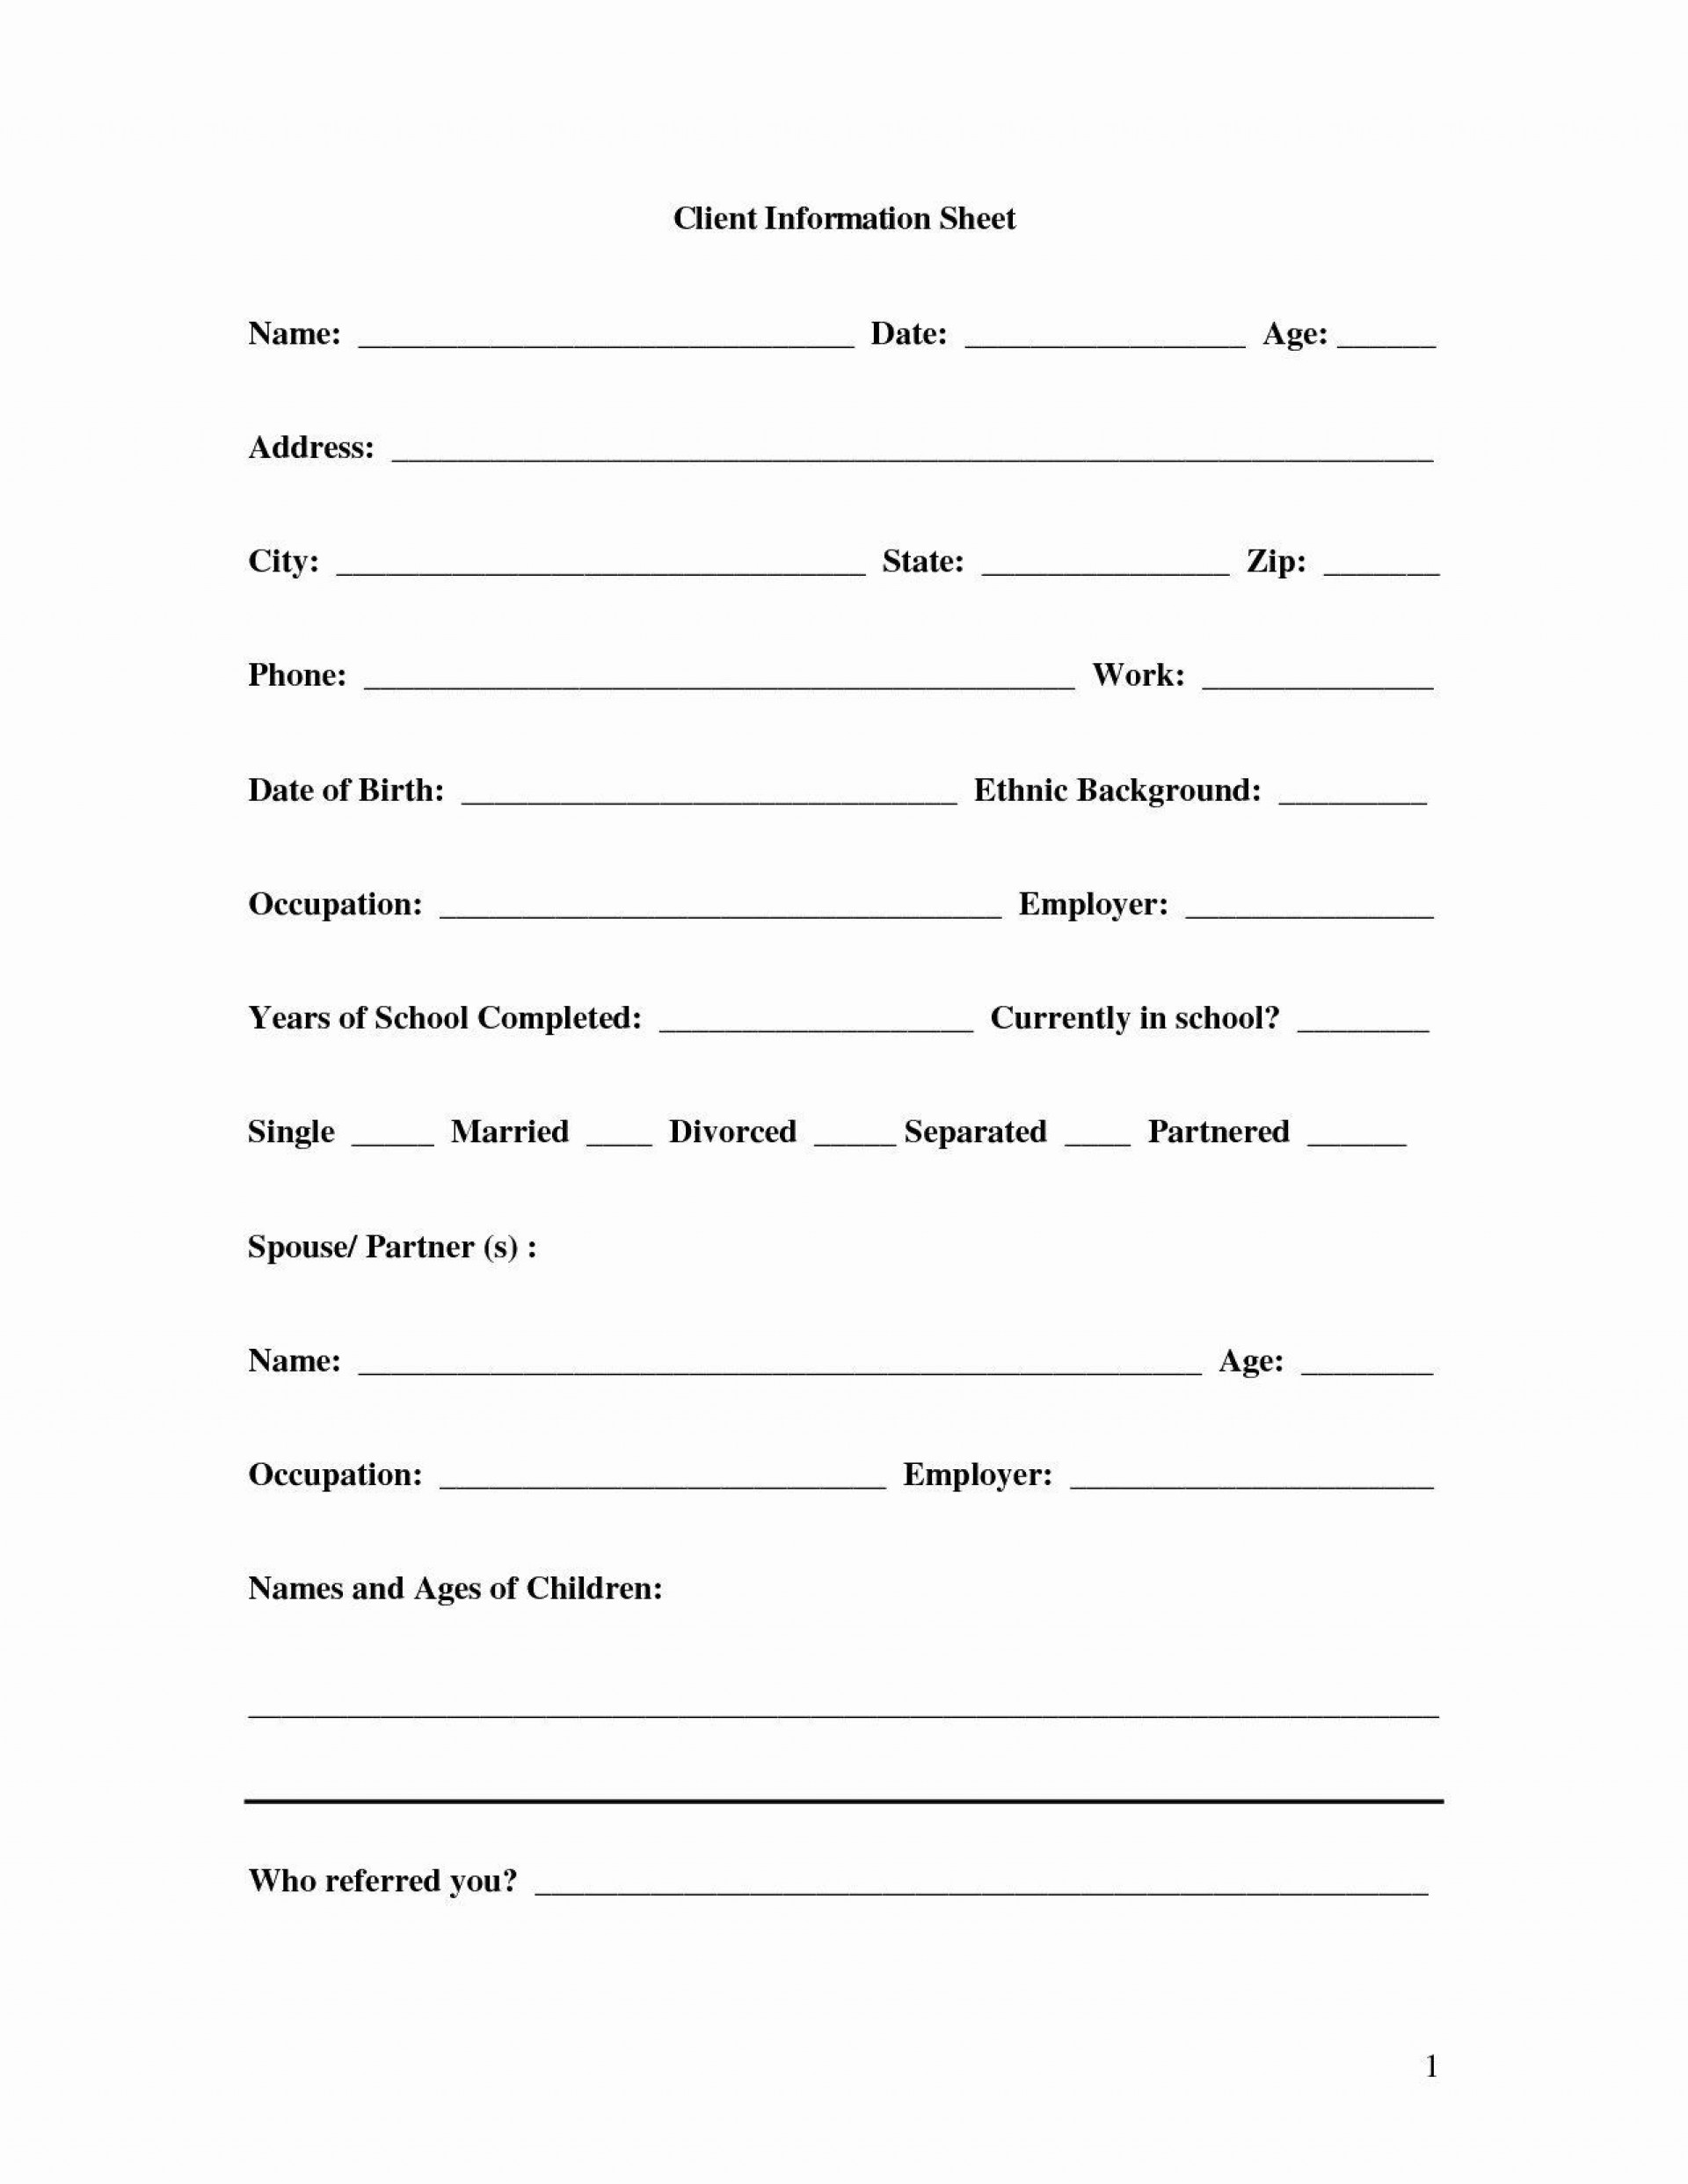 003 Formidable New Busines Client Information Form Template High Def 1920